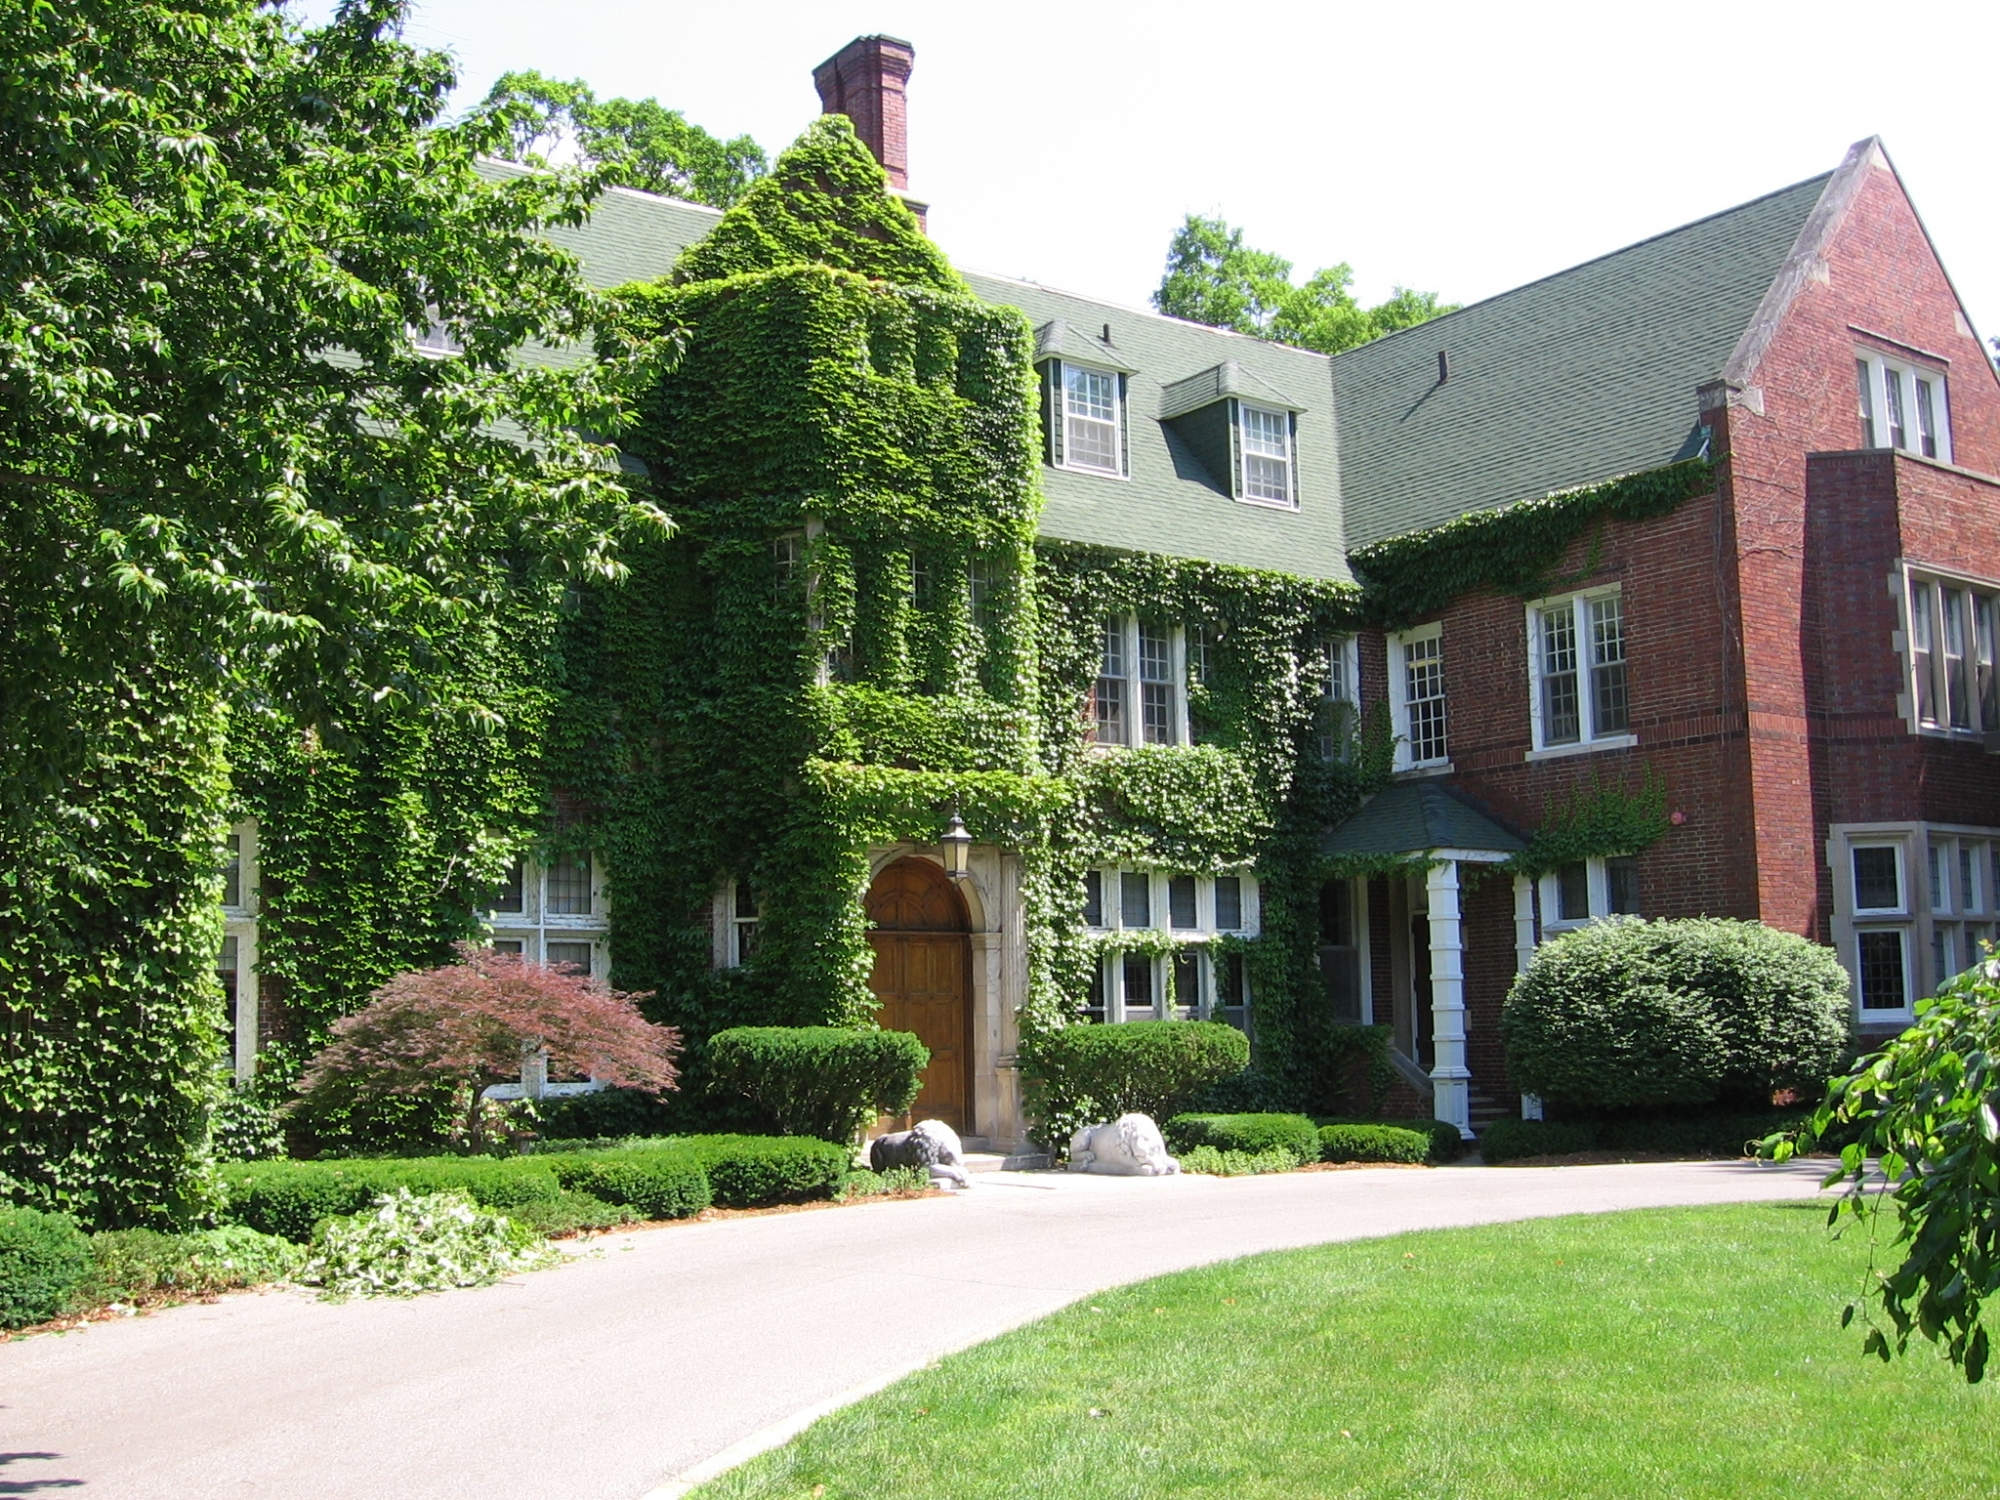 Holmdene Estate, Aquinas College Campus | History Grand Rapids